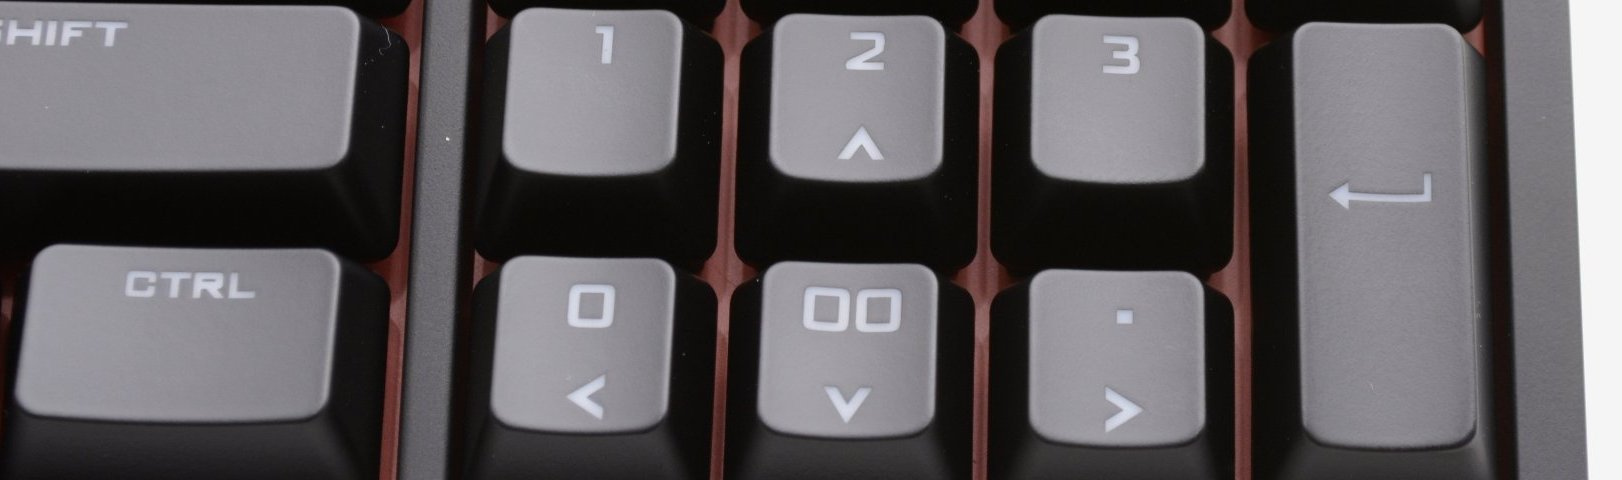 c4490559088 There is a huge number of Storm QuickFire models and one of the cheapest  and oldest is the QuickFire TK, a steel-reinforced, fully backlit  mechanical gaming ...